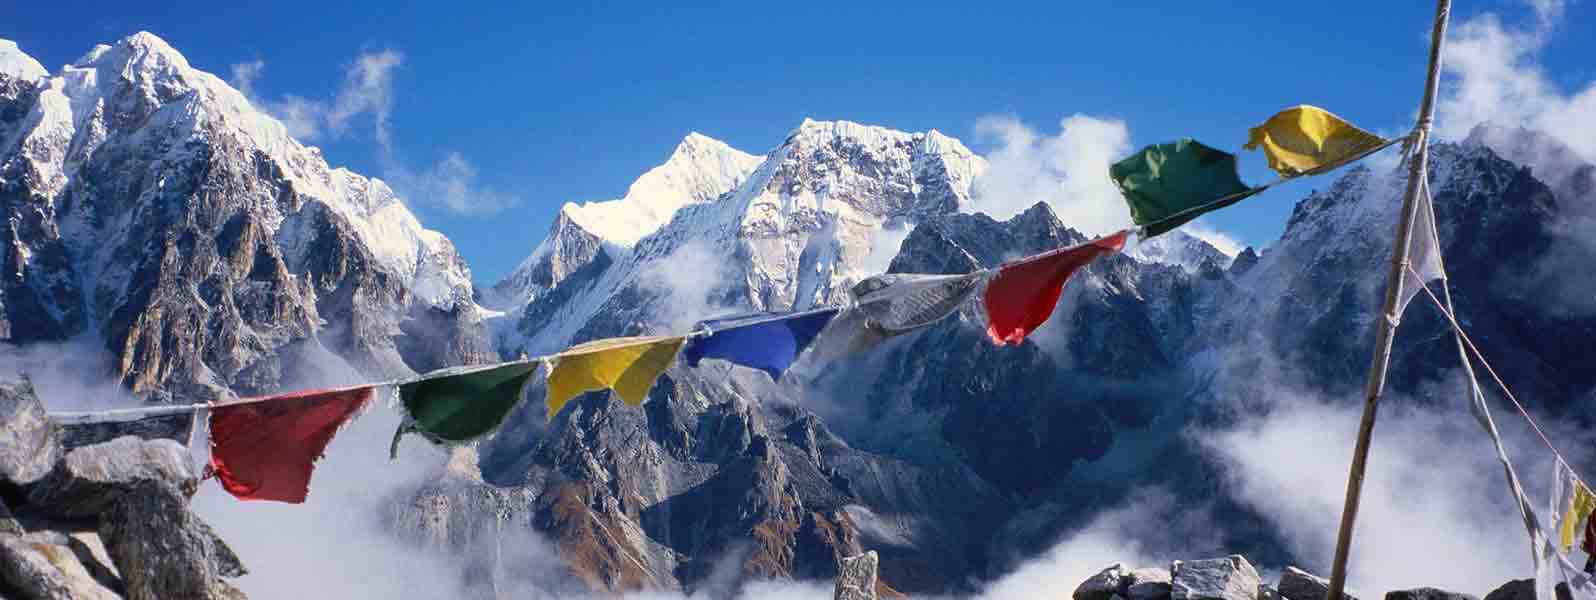 Sikkim India Lonely Planet